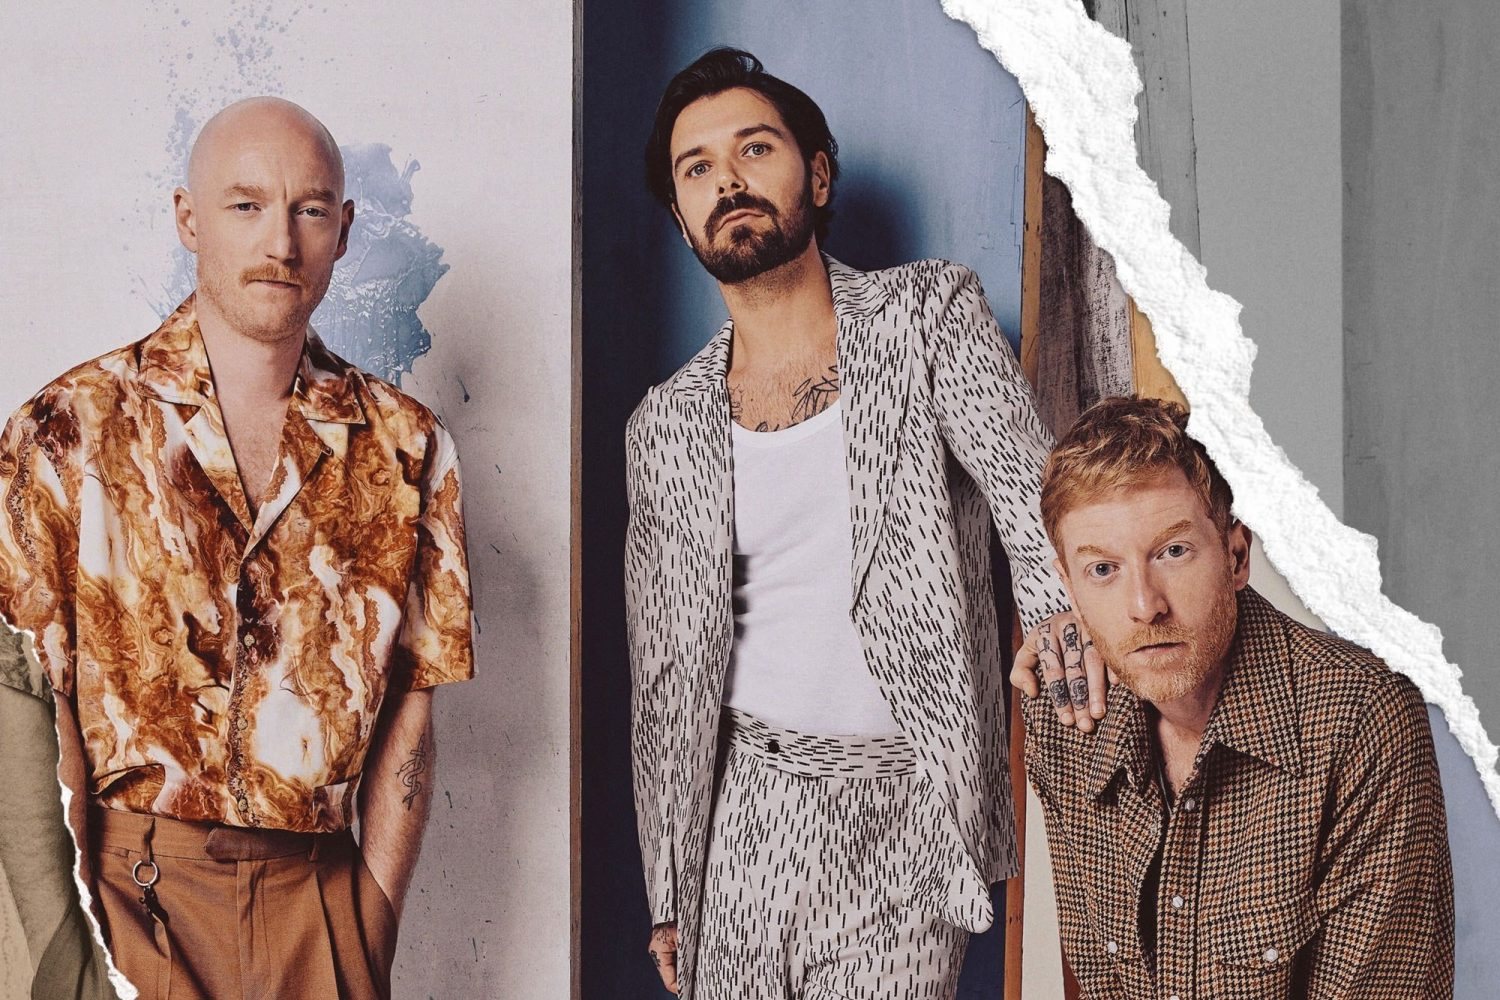 There's a new issue of Upset, featuring Biffy Clyro, Stand Atlantic, Wargasm and more!